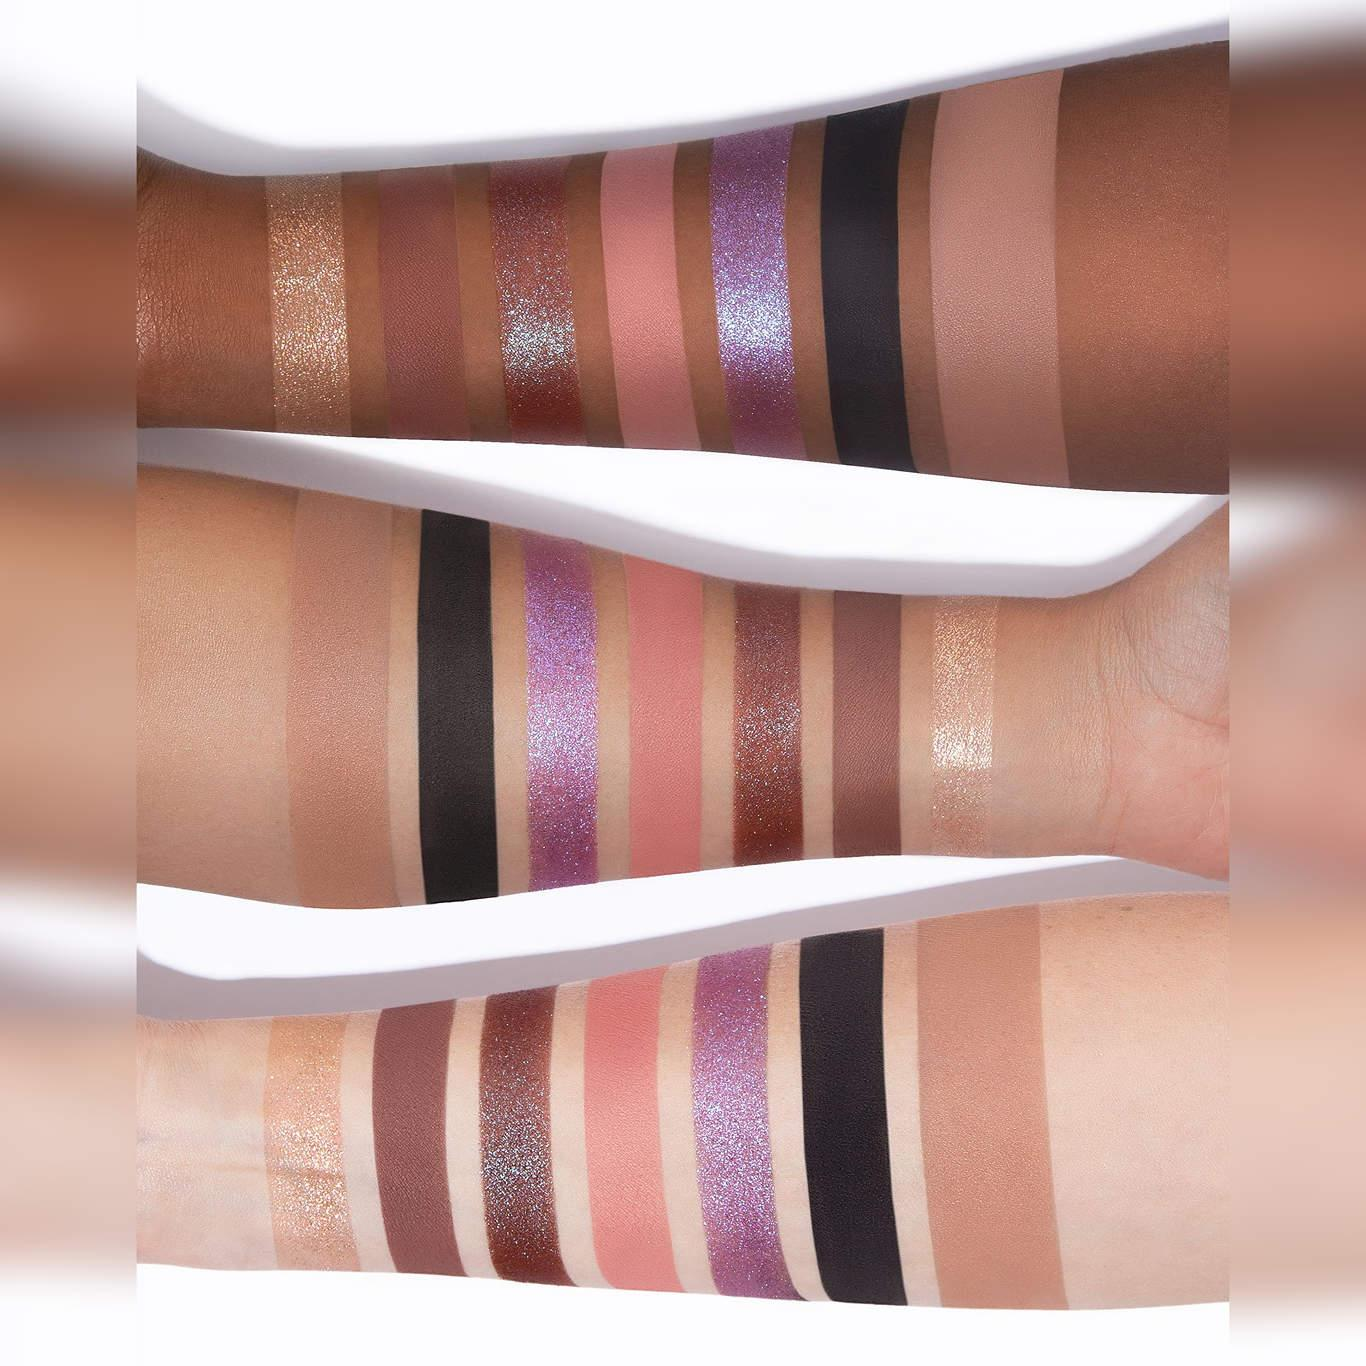 Dose Of Colors Donald Duck & Daisy Duck Collection Donald & Daisy Eyeshadow + Bronzer Palette Arm Swatches